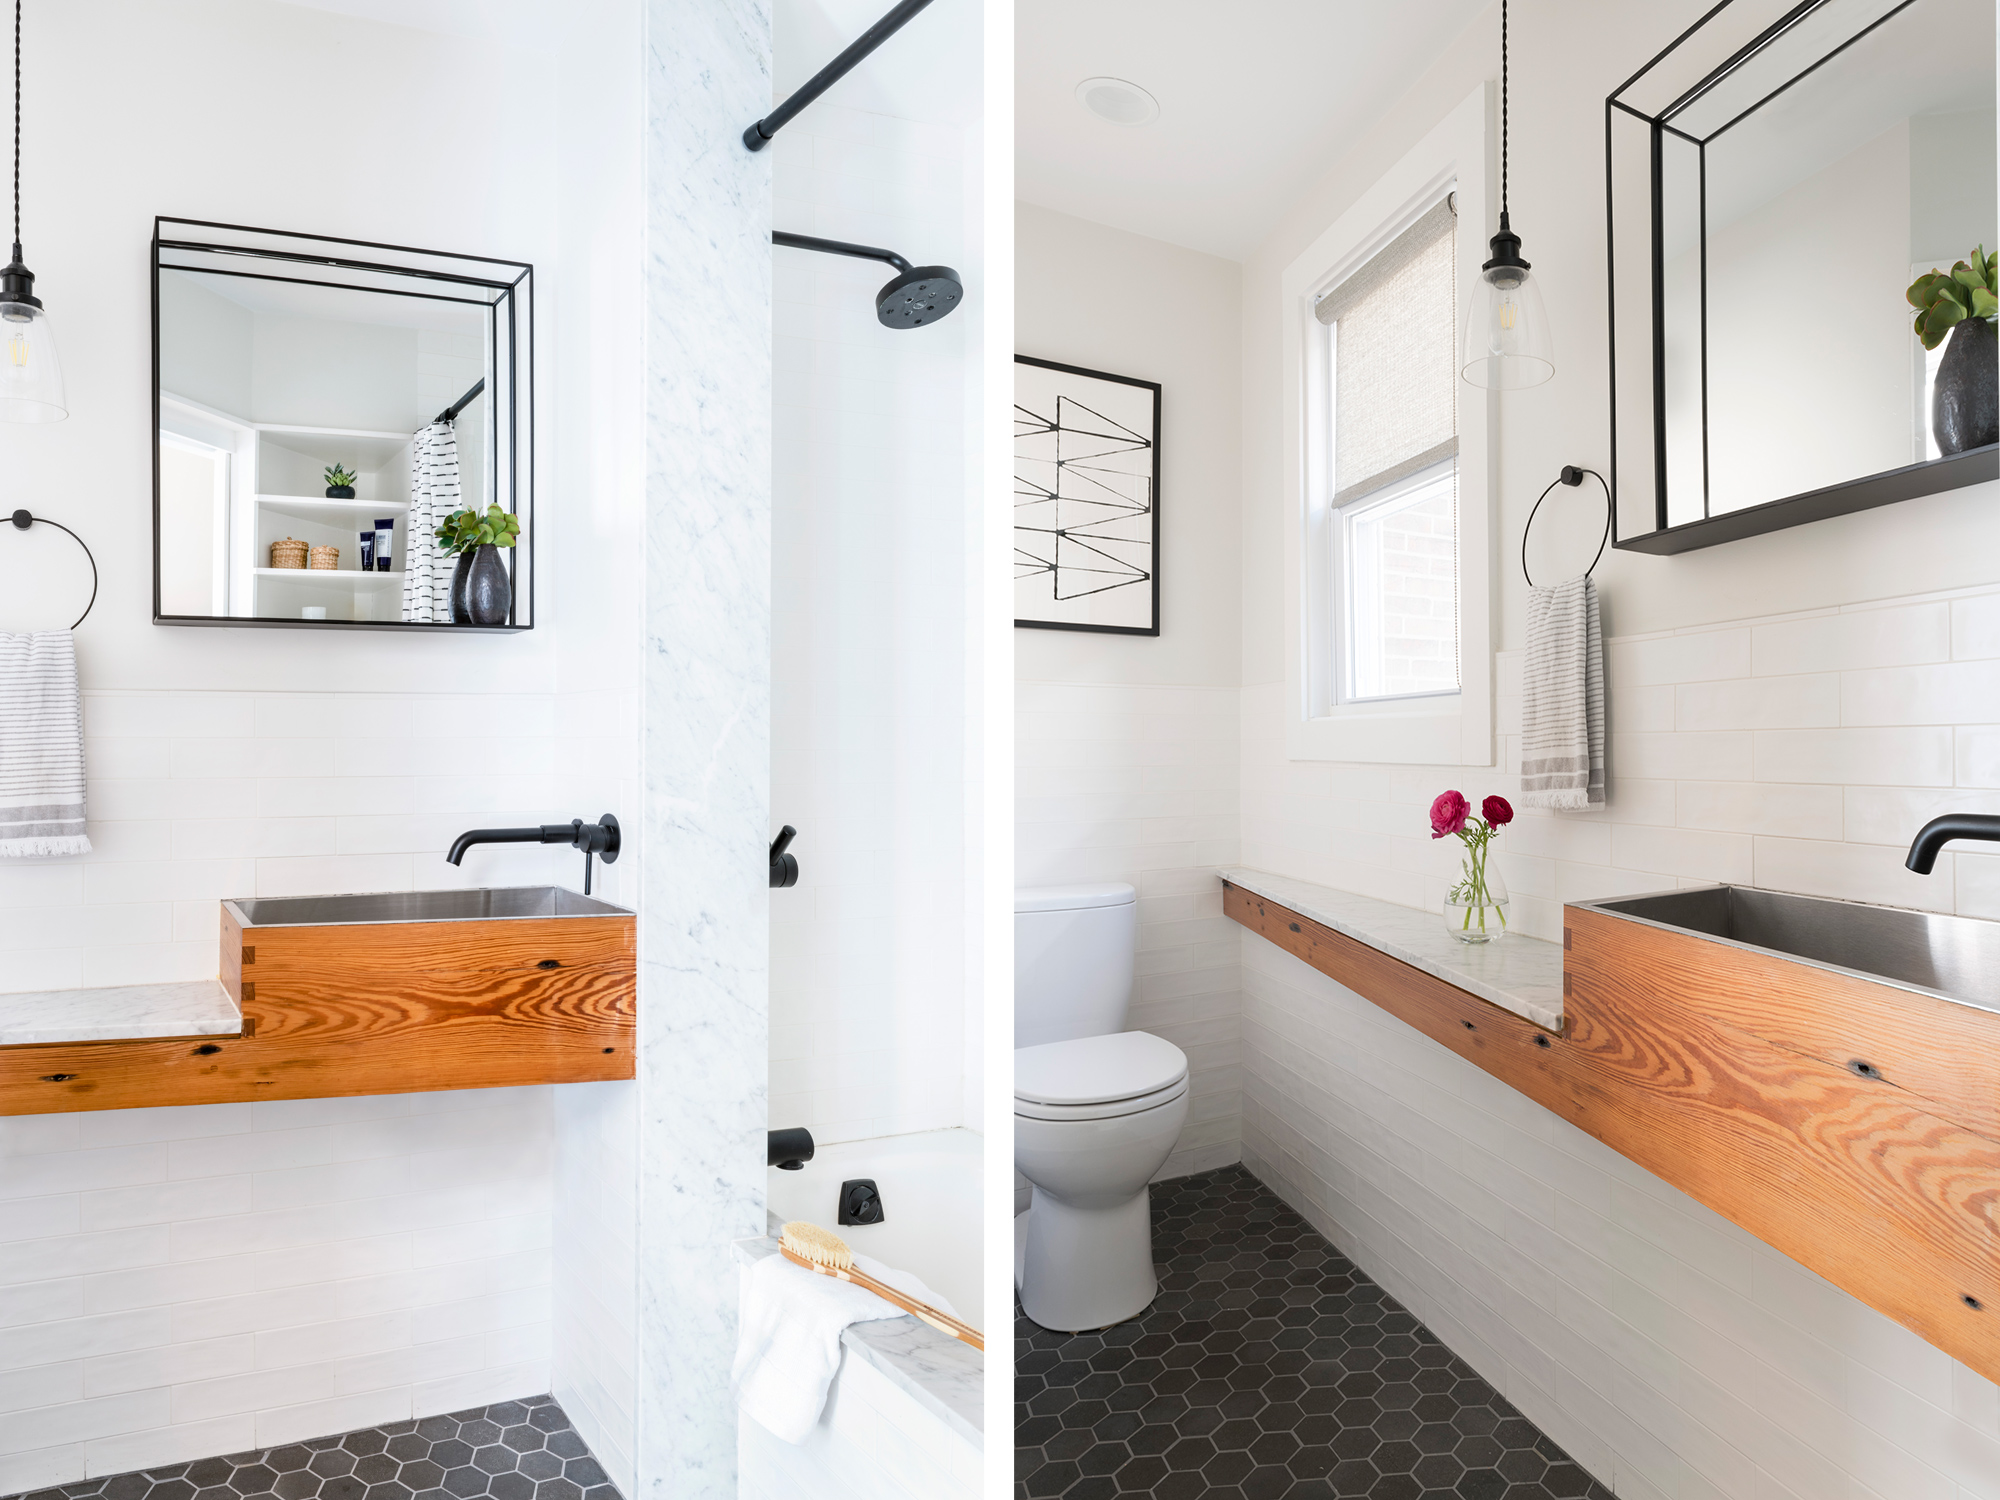 Chestnut Bathroom Remodel by Shake Architecture and Construction